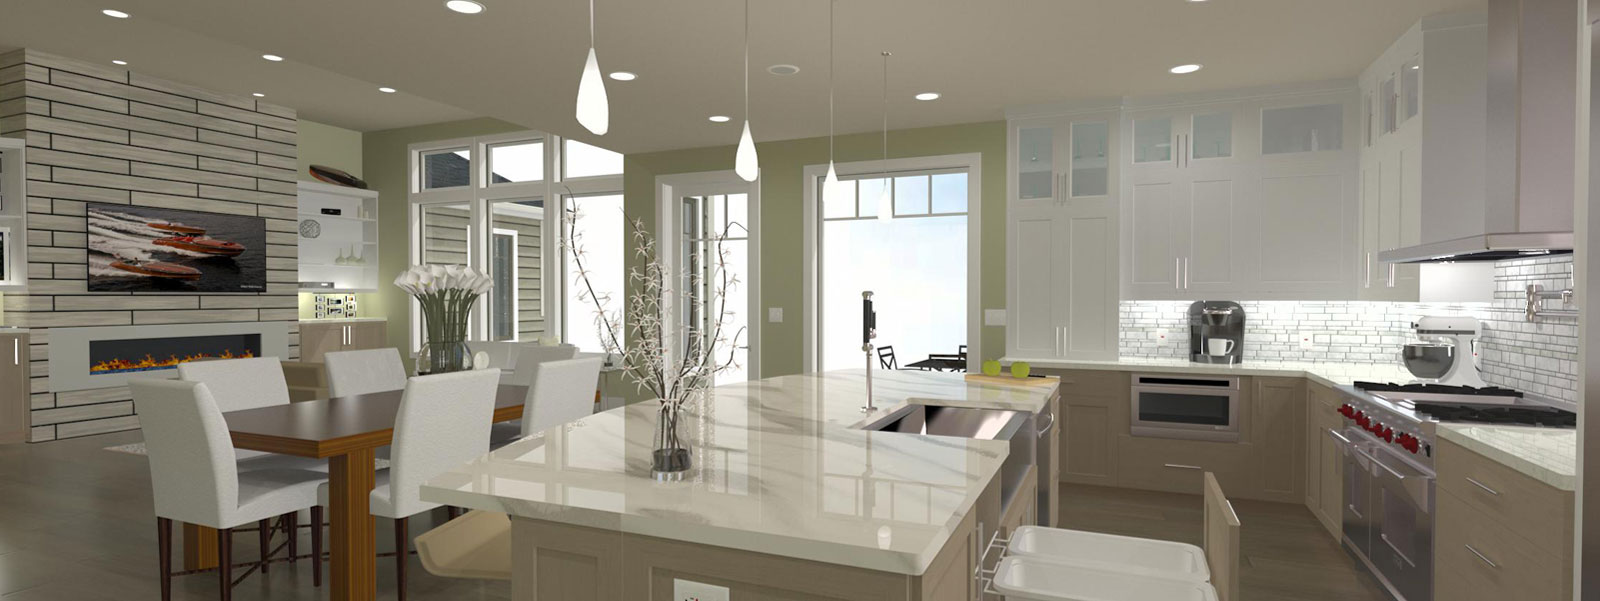 Kitchen Designed And Rendered Using Chief Architect Software